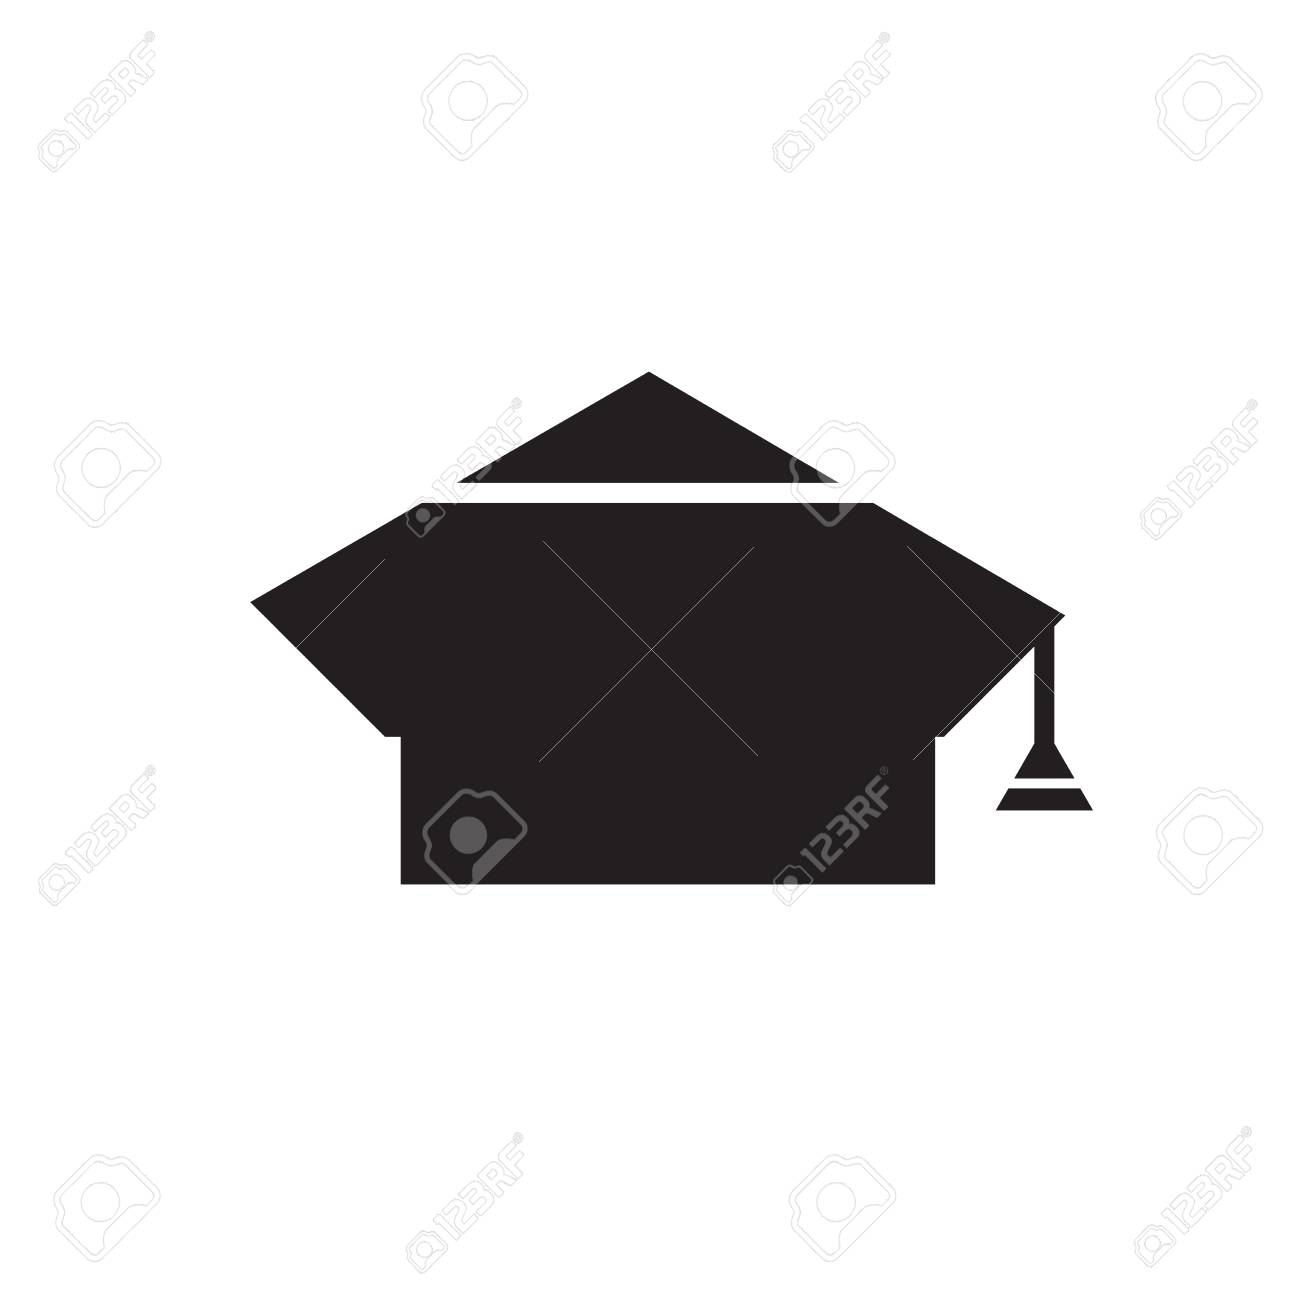 57667d54cd8 Graduation Cap icon vector isolated on white background for your web and  mobile app design